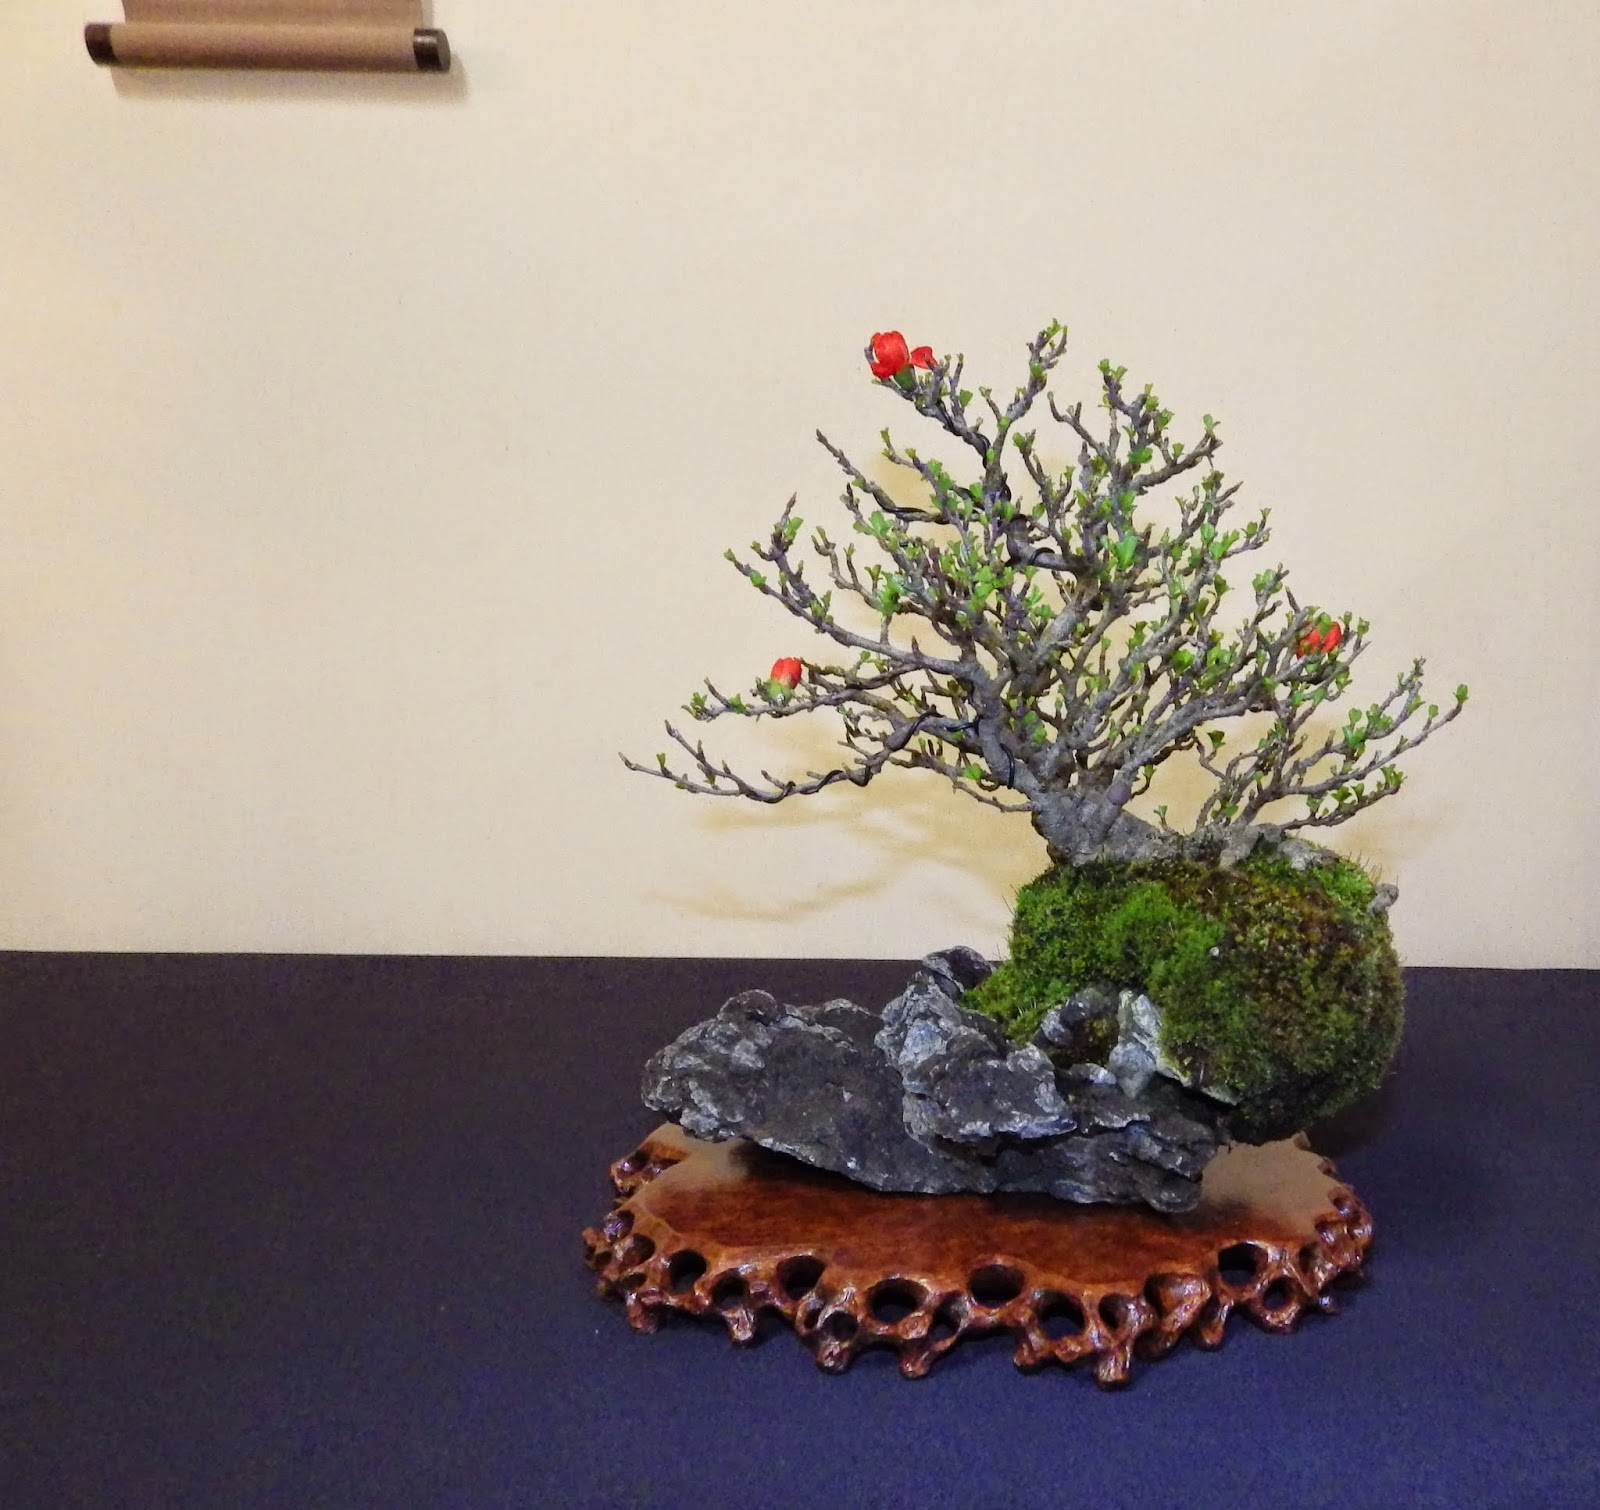 Bespoke Bonsai Stands Shohin UK II Exhibition March 2015